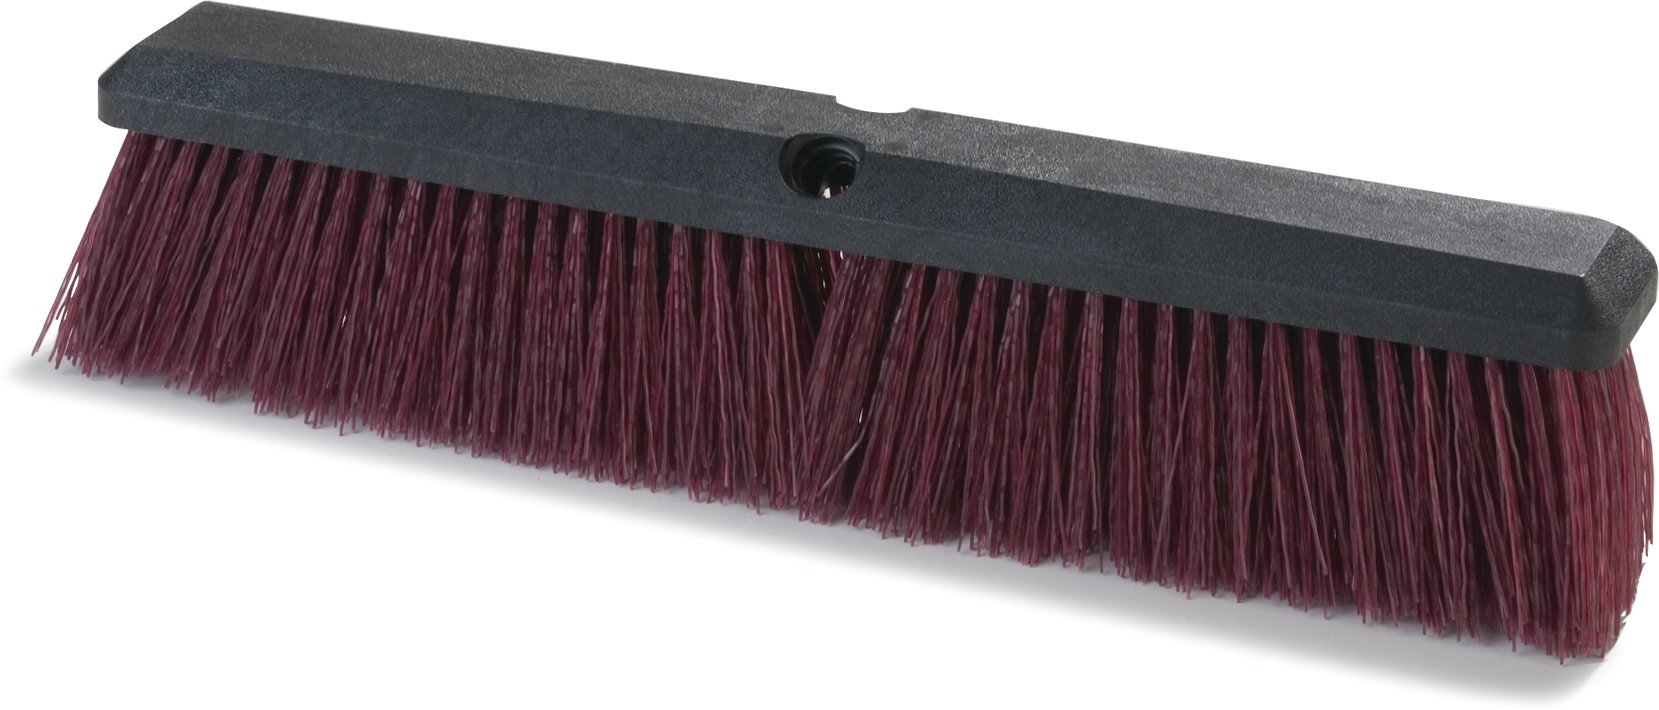 Carlisle 3620722400 Flo-Pac Coarse/Heavy Floor Sweep, Hardwood Block, 3-1/4''-Long Stiff Maroon Polypropylene Bristles, 24'' L x 2-1/2'' W, (Case of 12)